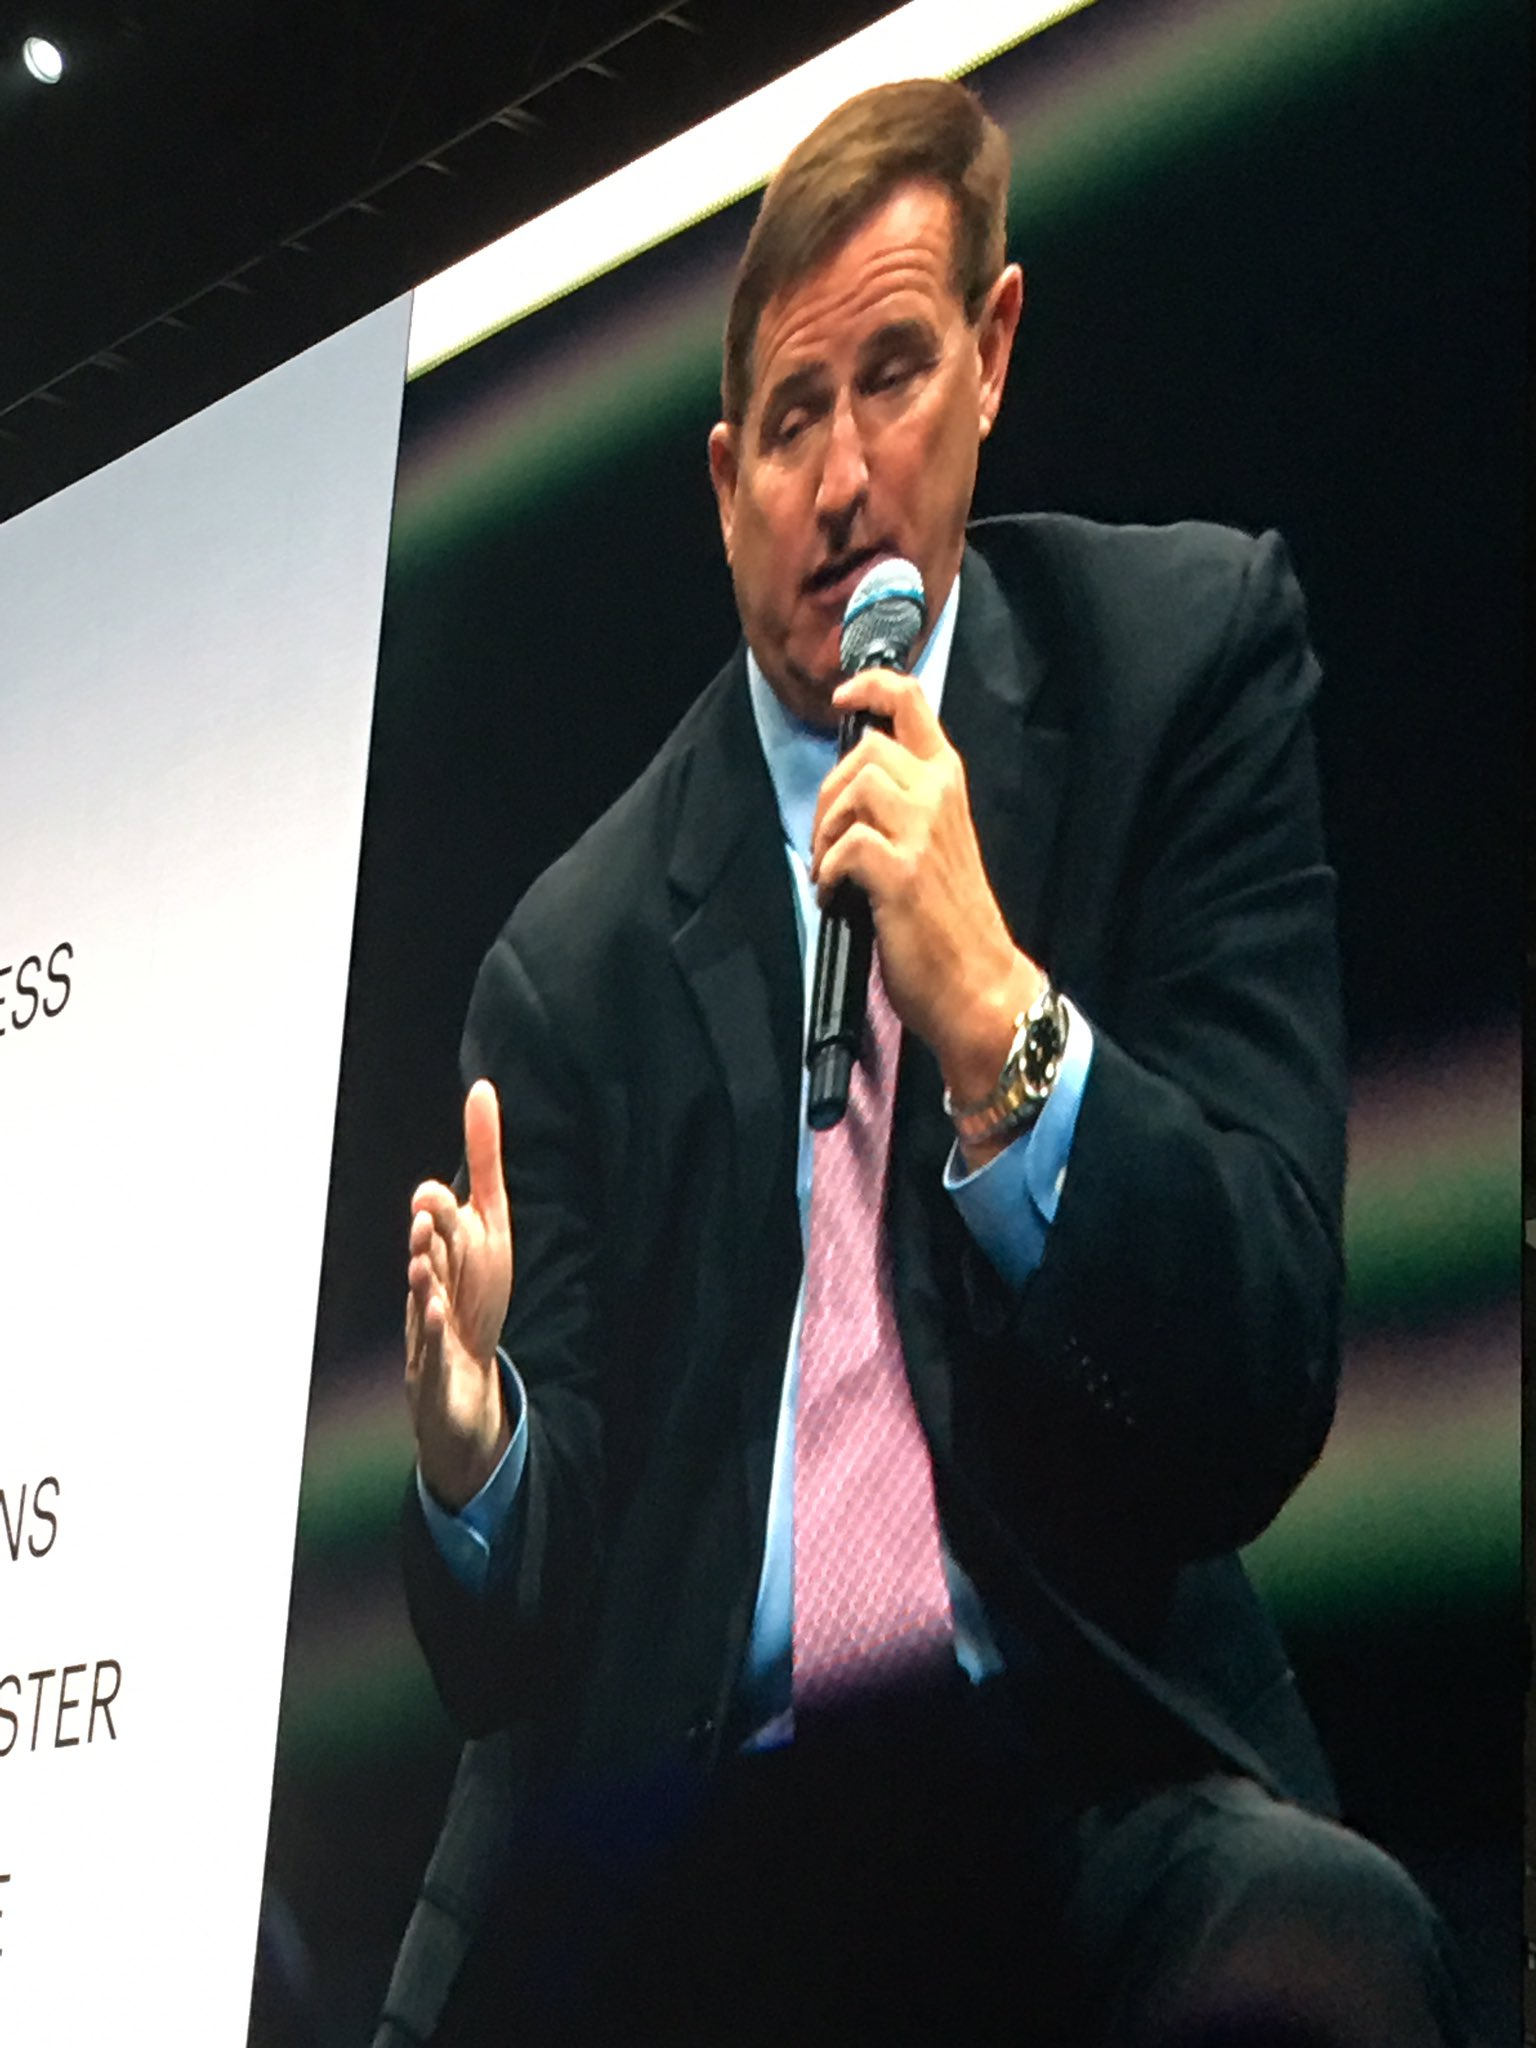 It's on: @MarkVHurd details @Oracle - @NetSuite strategy on stage   #SuiteWorld17 https://t.co/JEflNAplx0